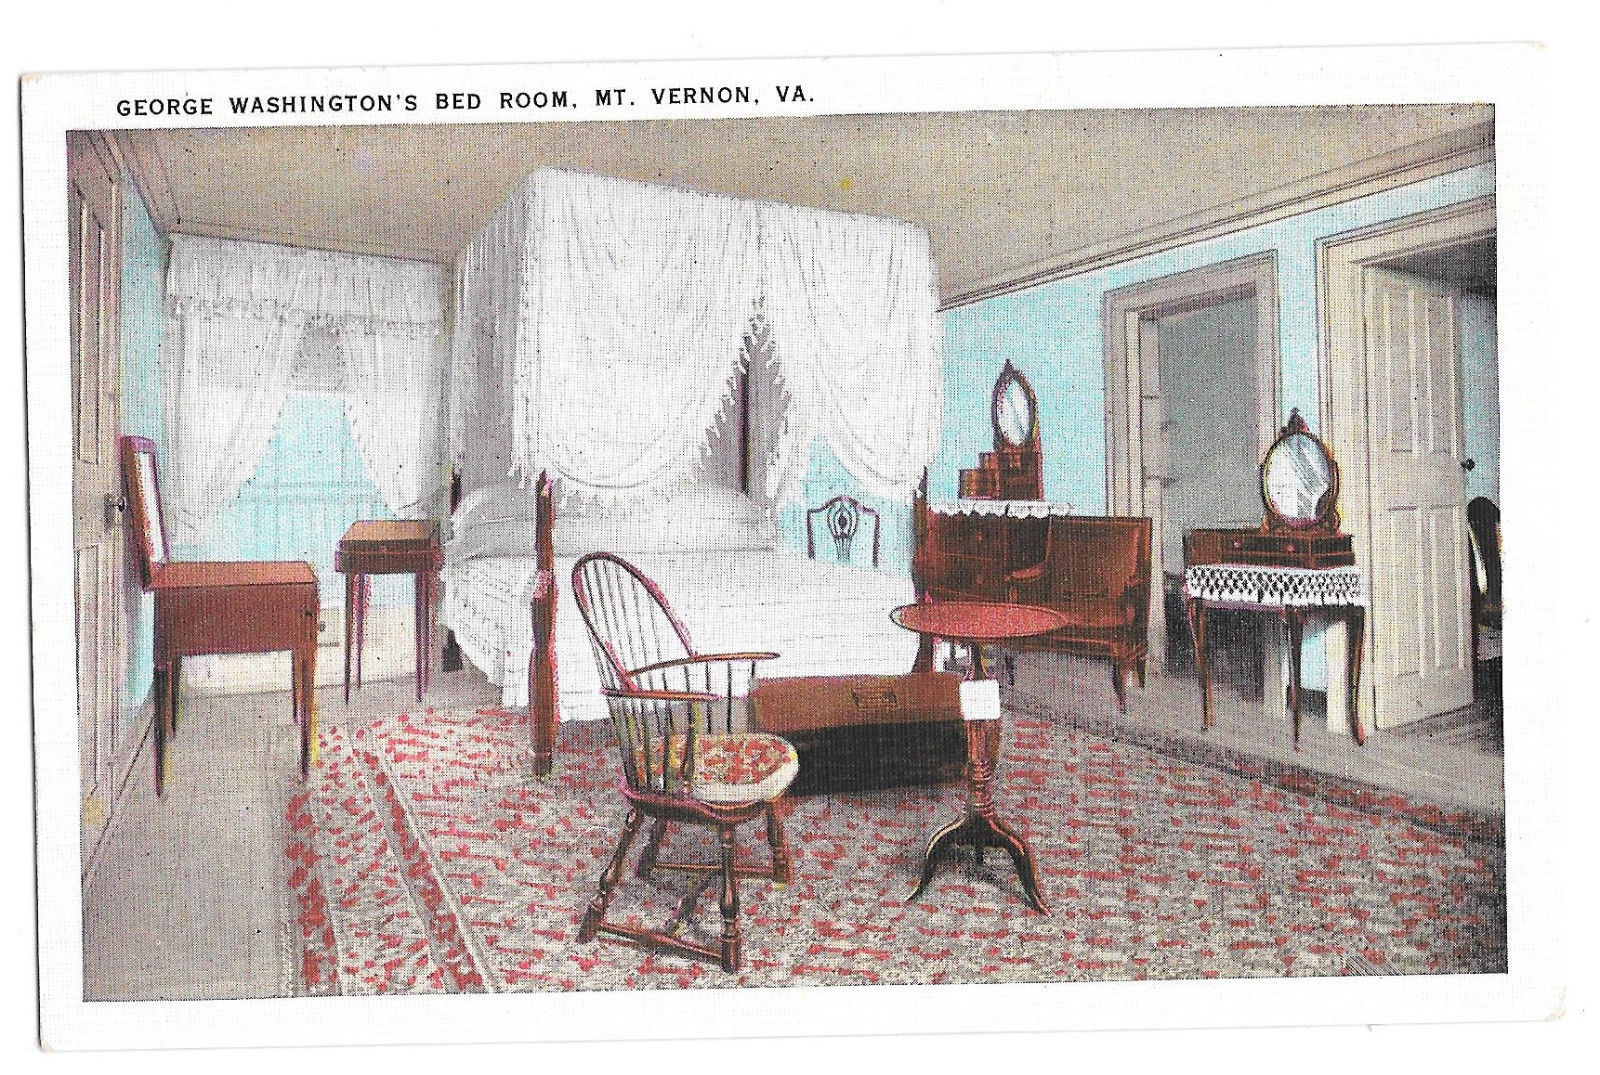 VA Mount Vernon George Washington's Bed Room Vtg Tichnor Postcard Virginia